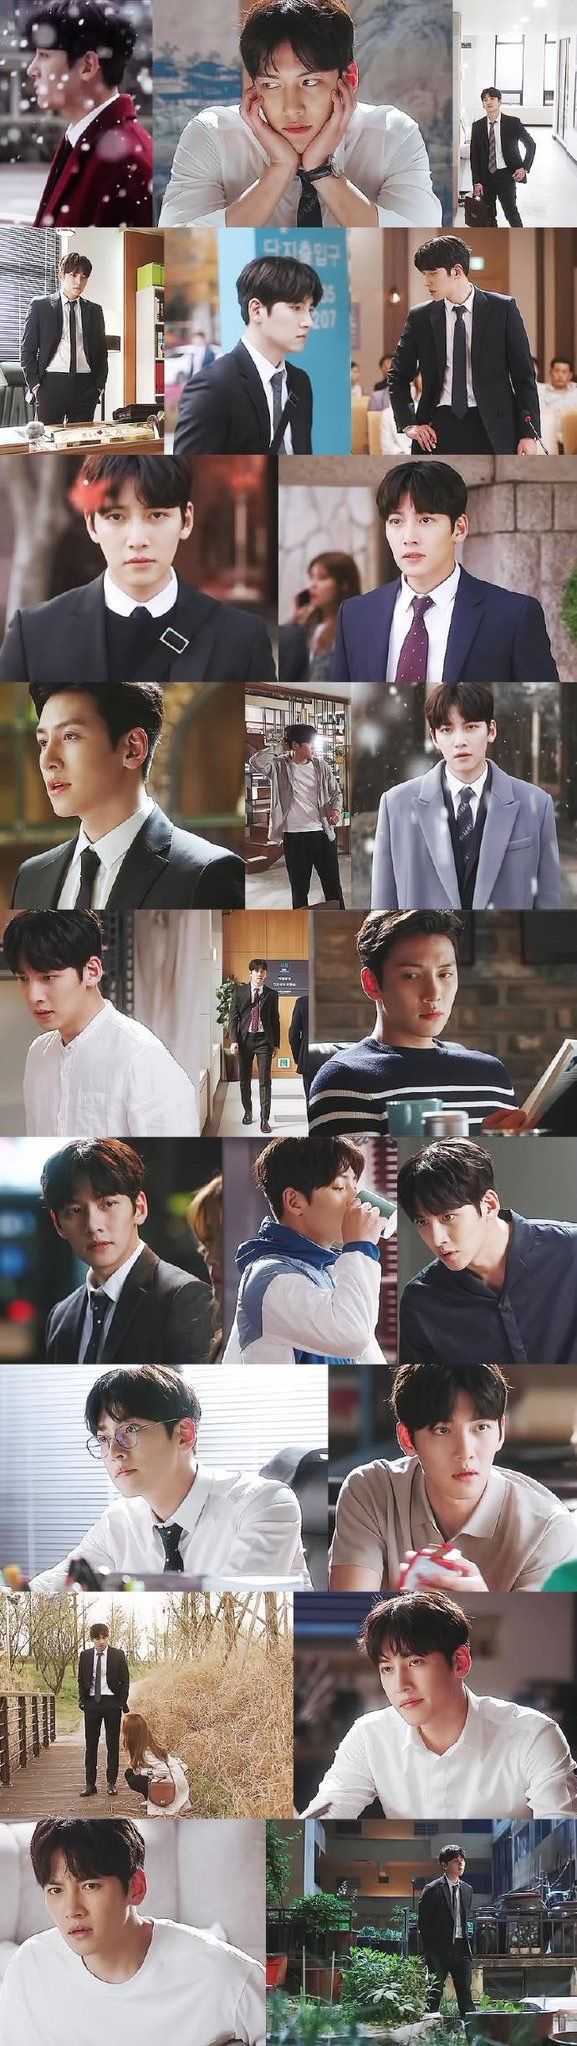 Ji Chang wook in 'Suspicious Partner'